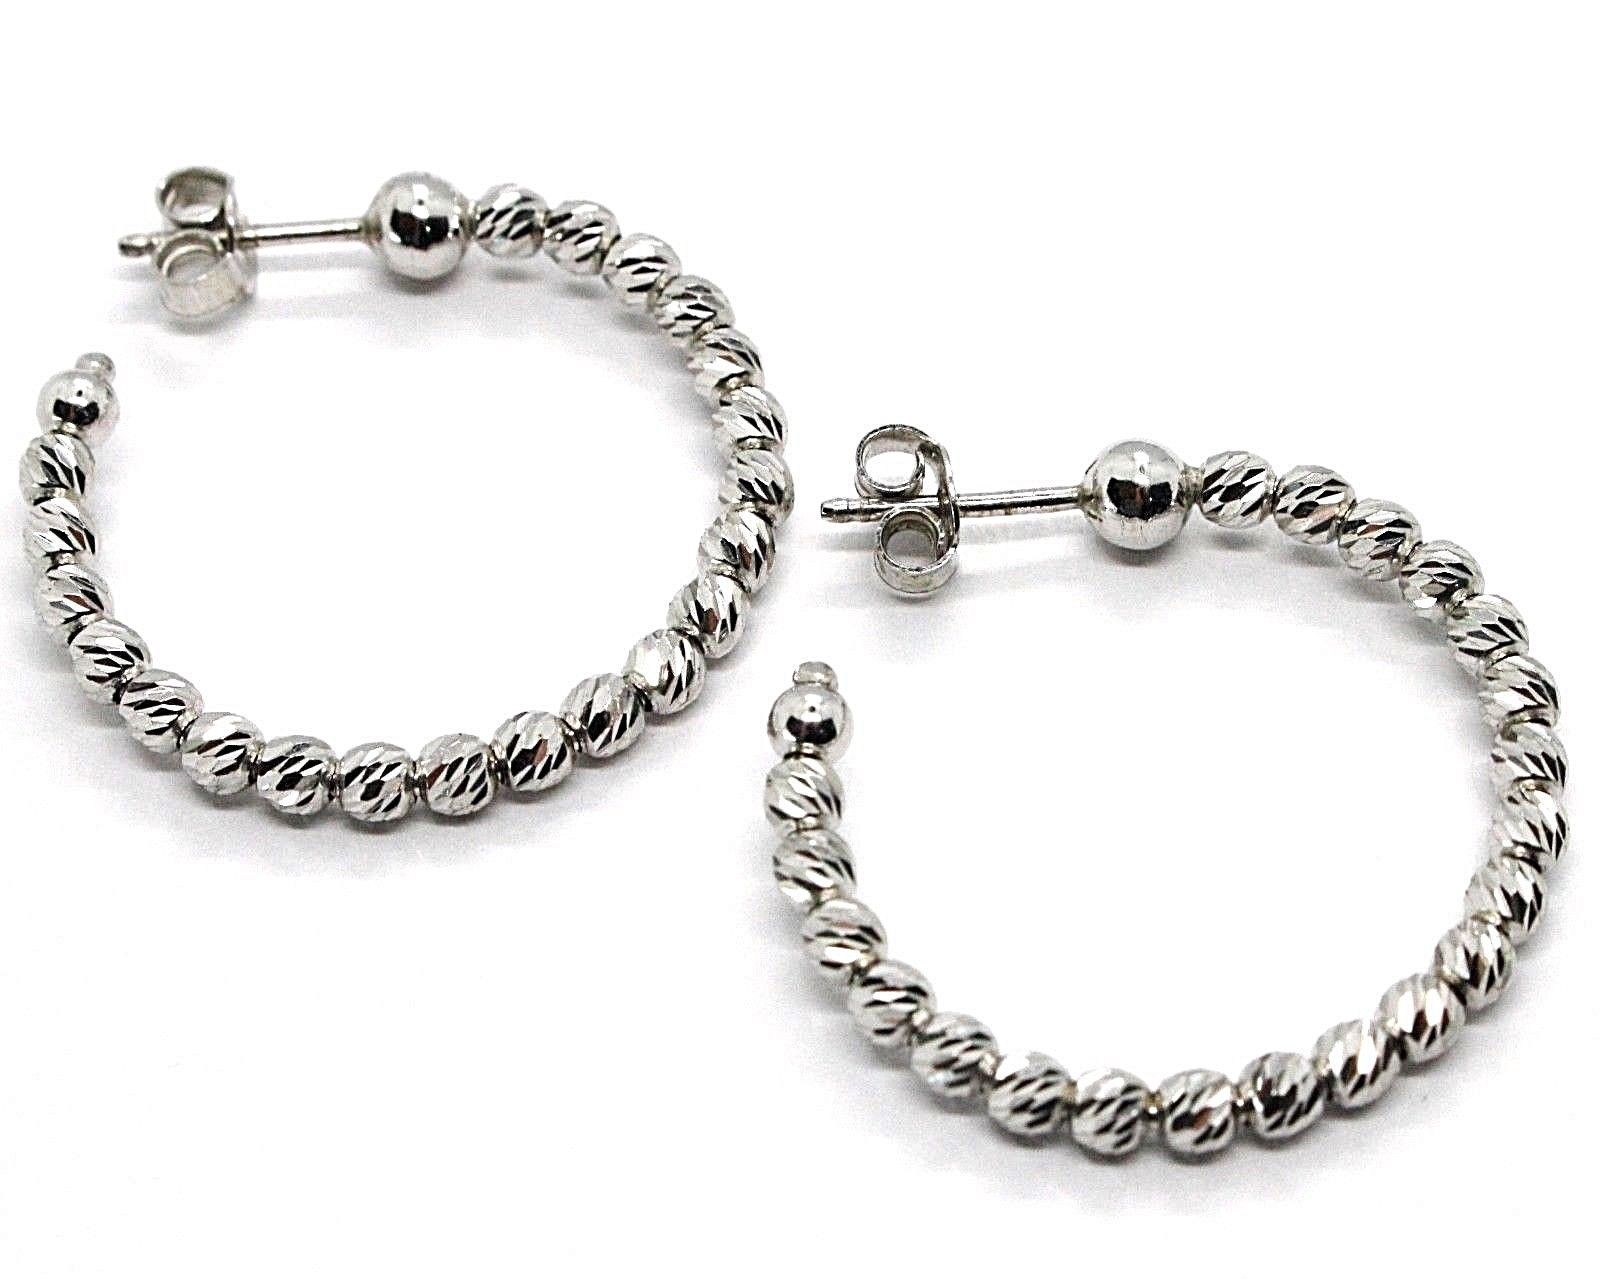 925 STERLING SILVER OFFICINA BERNARDI DIAMOND CUT HOOPS EARRINGS SPHERES 28 MM